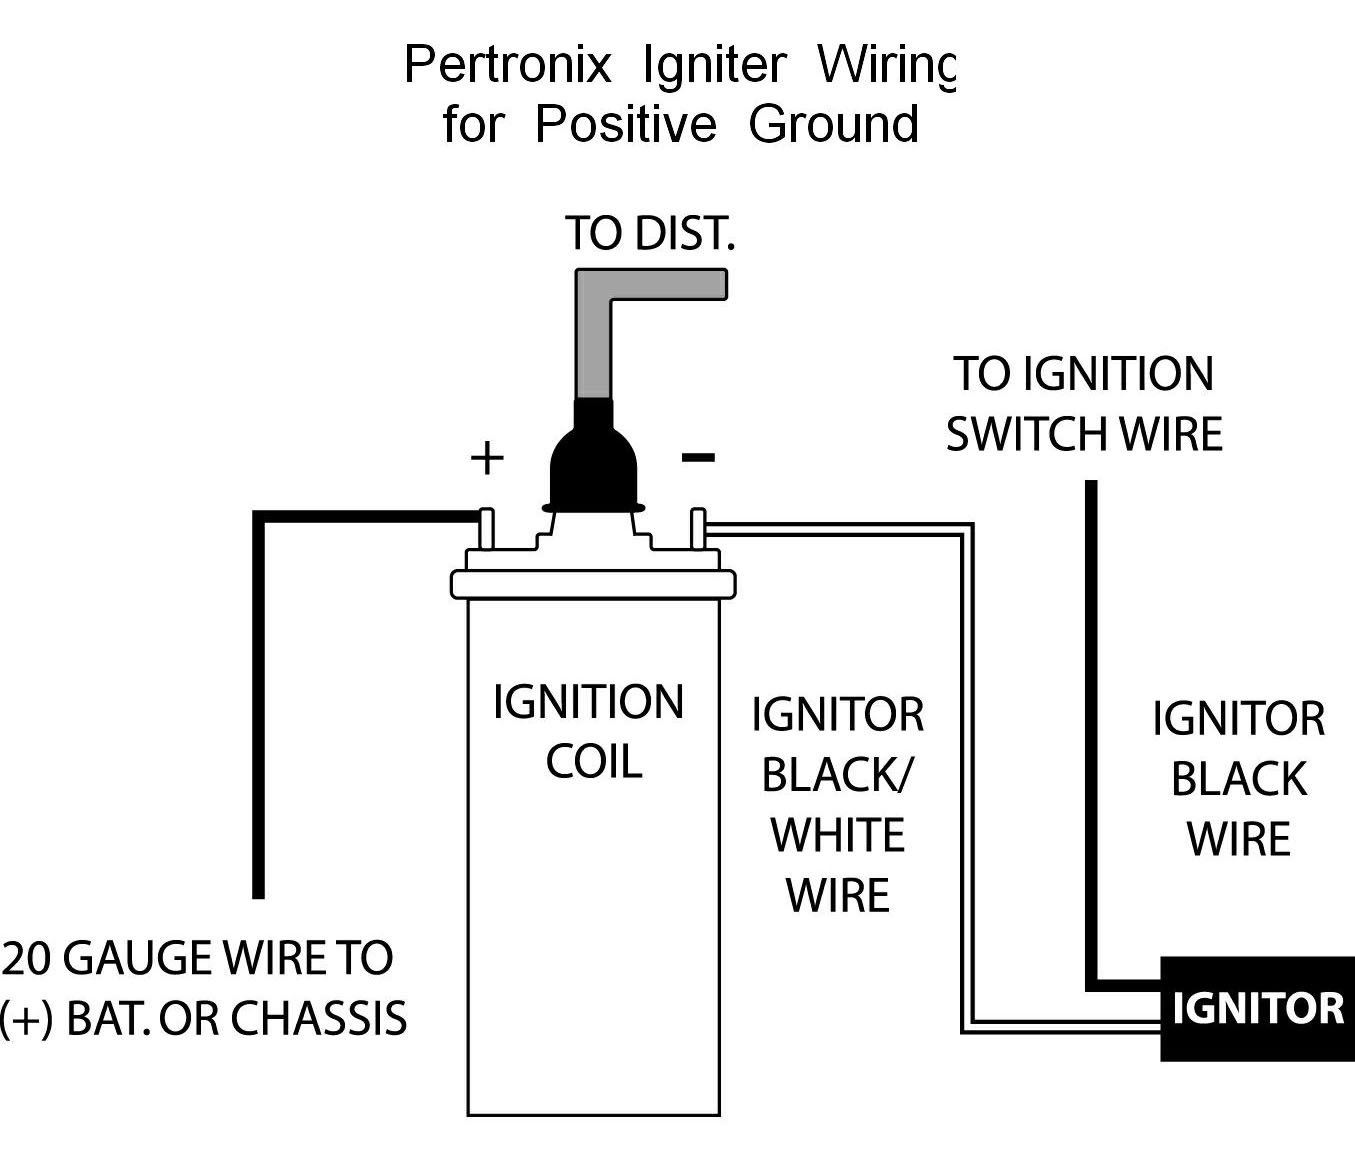 Positive Ground Wiring Diagram - Wiring Diagrams Load on